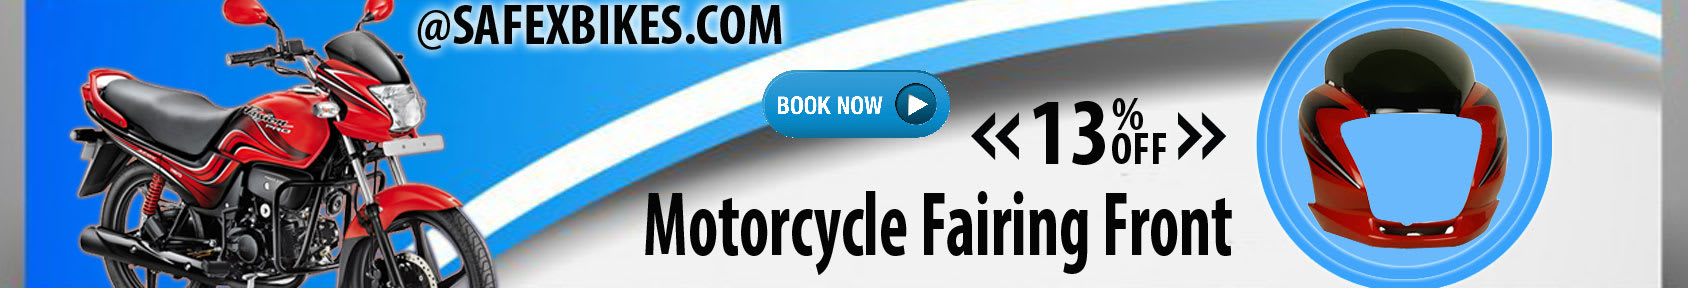 Special offers on Genuine Motorcycle Spare Parts And Accessories - Get 13percent off on front fairing